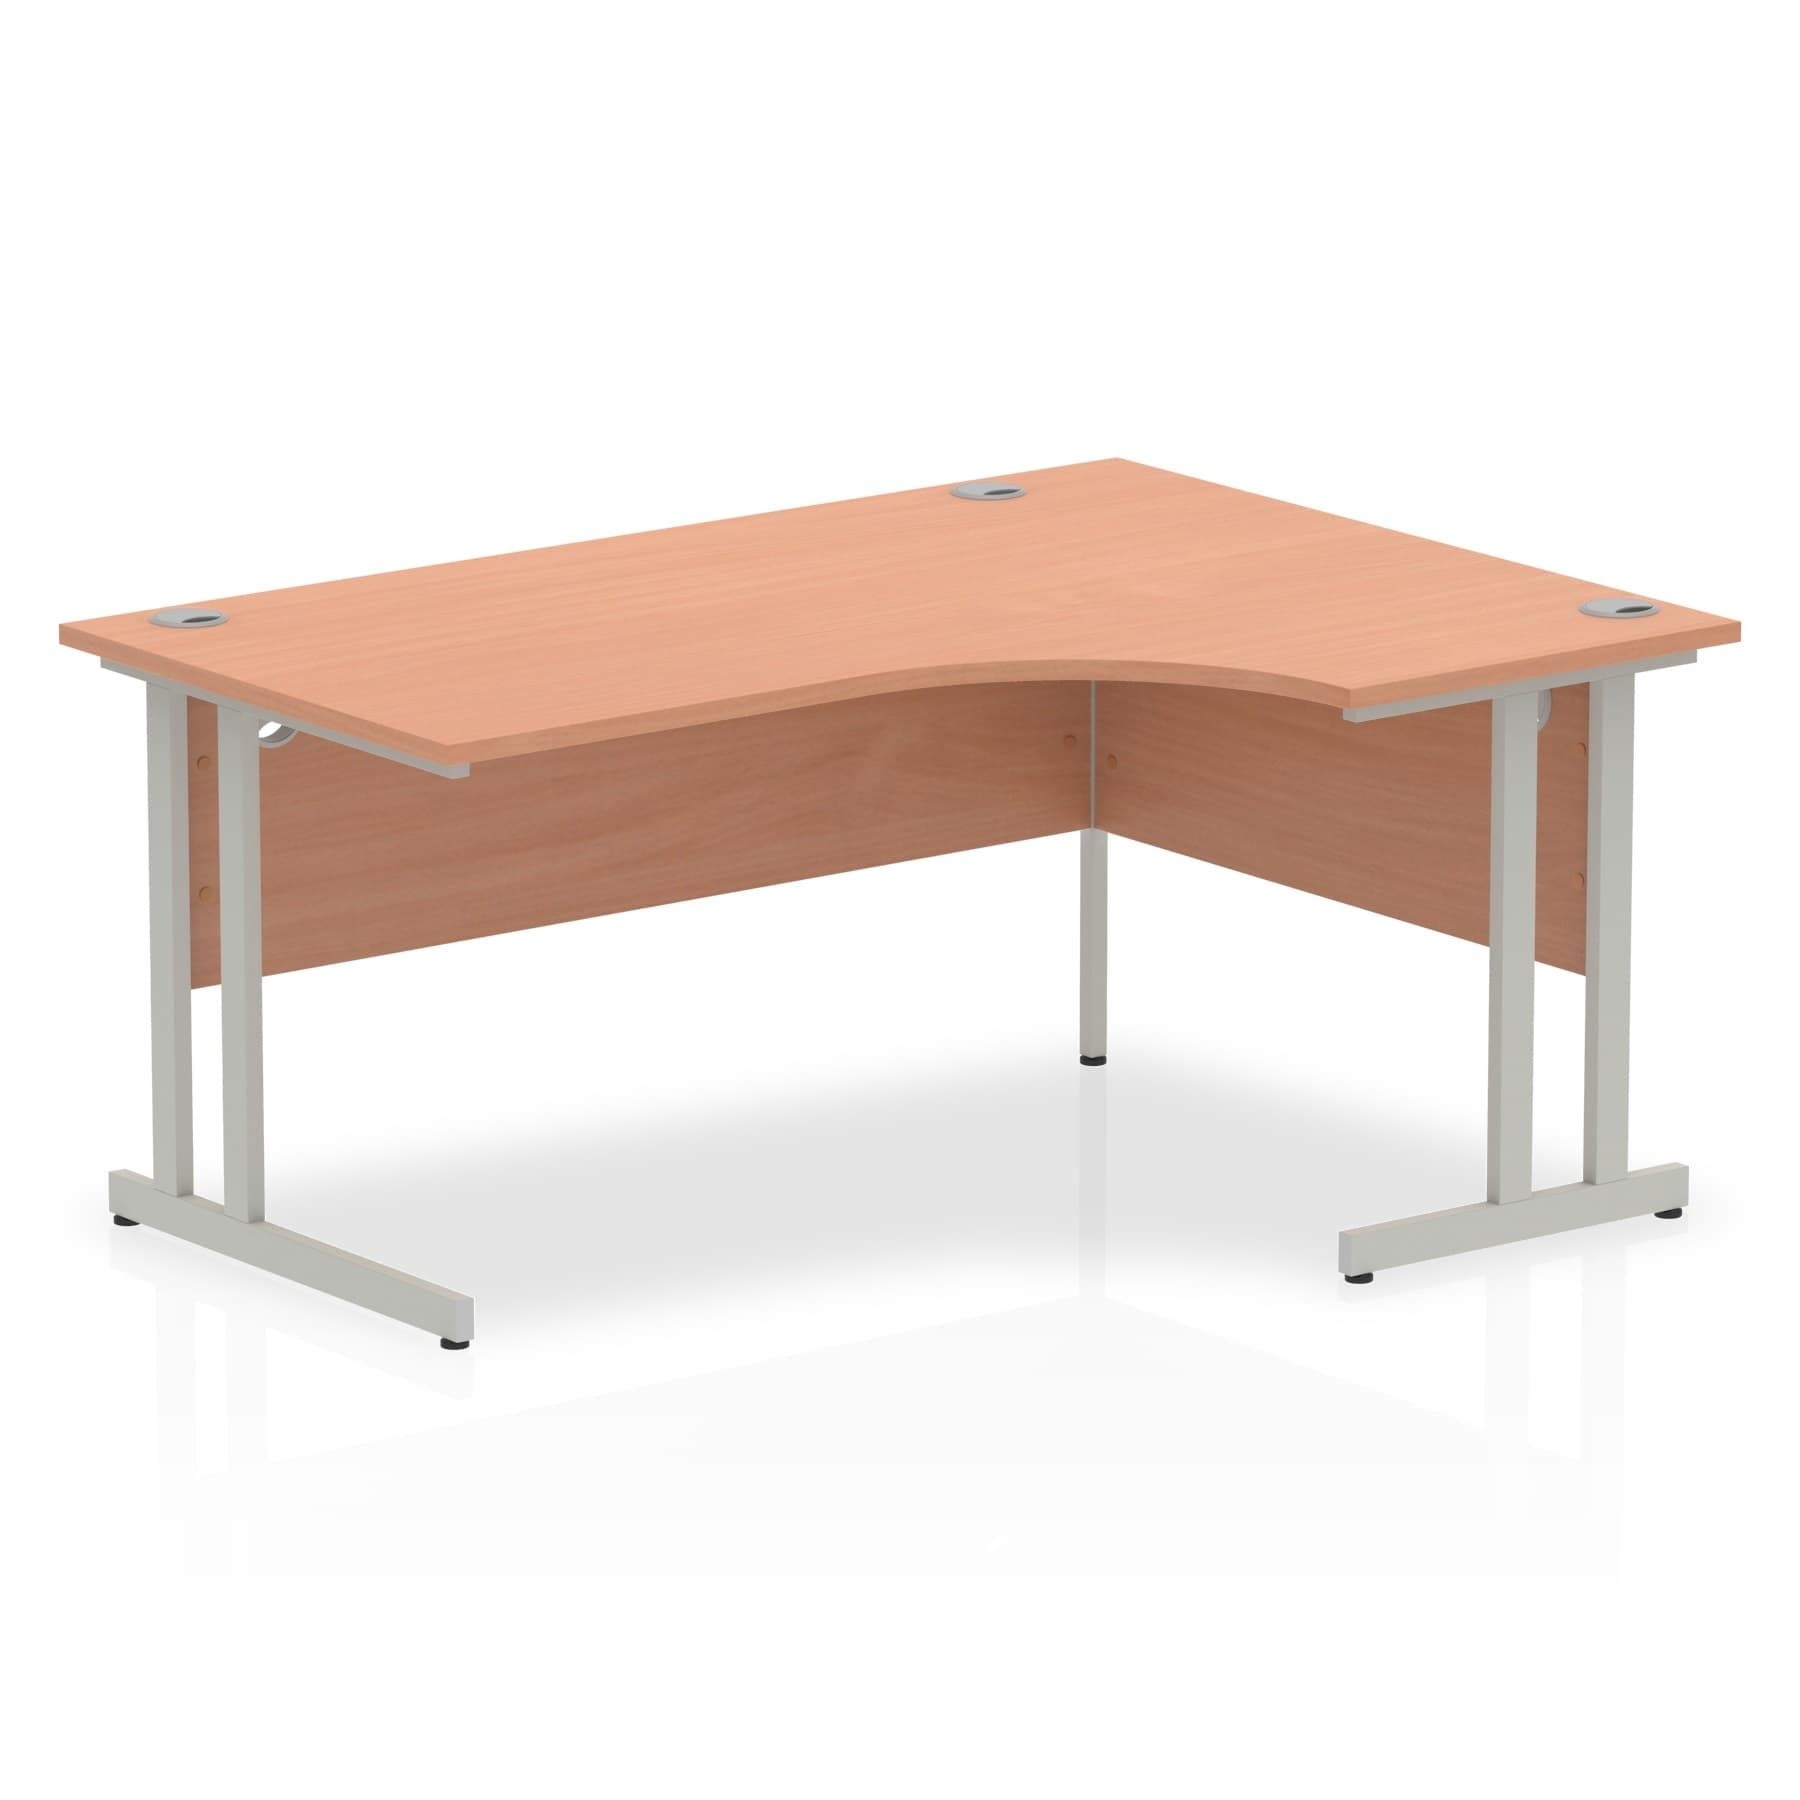 Impulse 1600 Right Hand Crescent Desk with Cantilever Leg